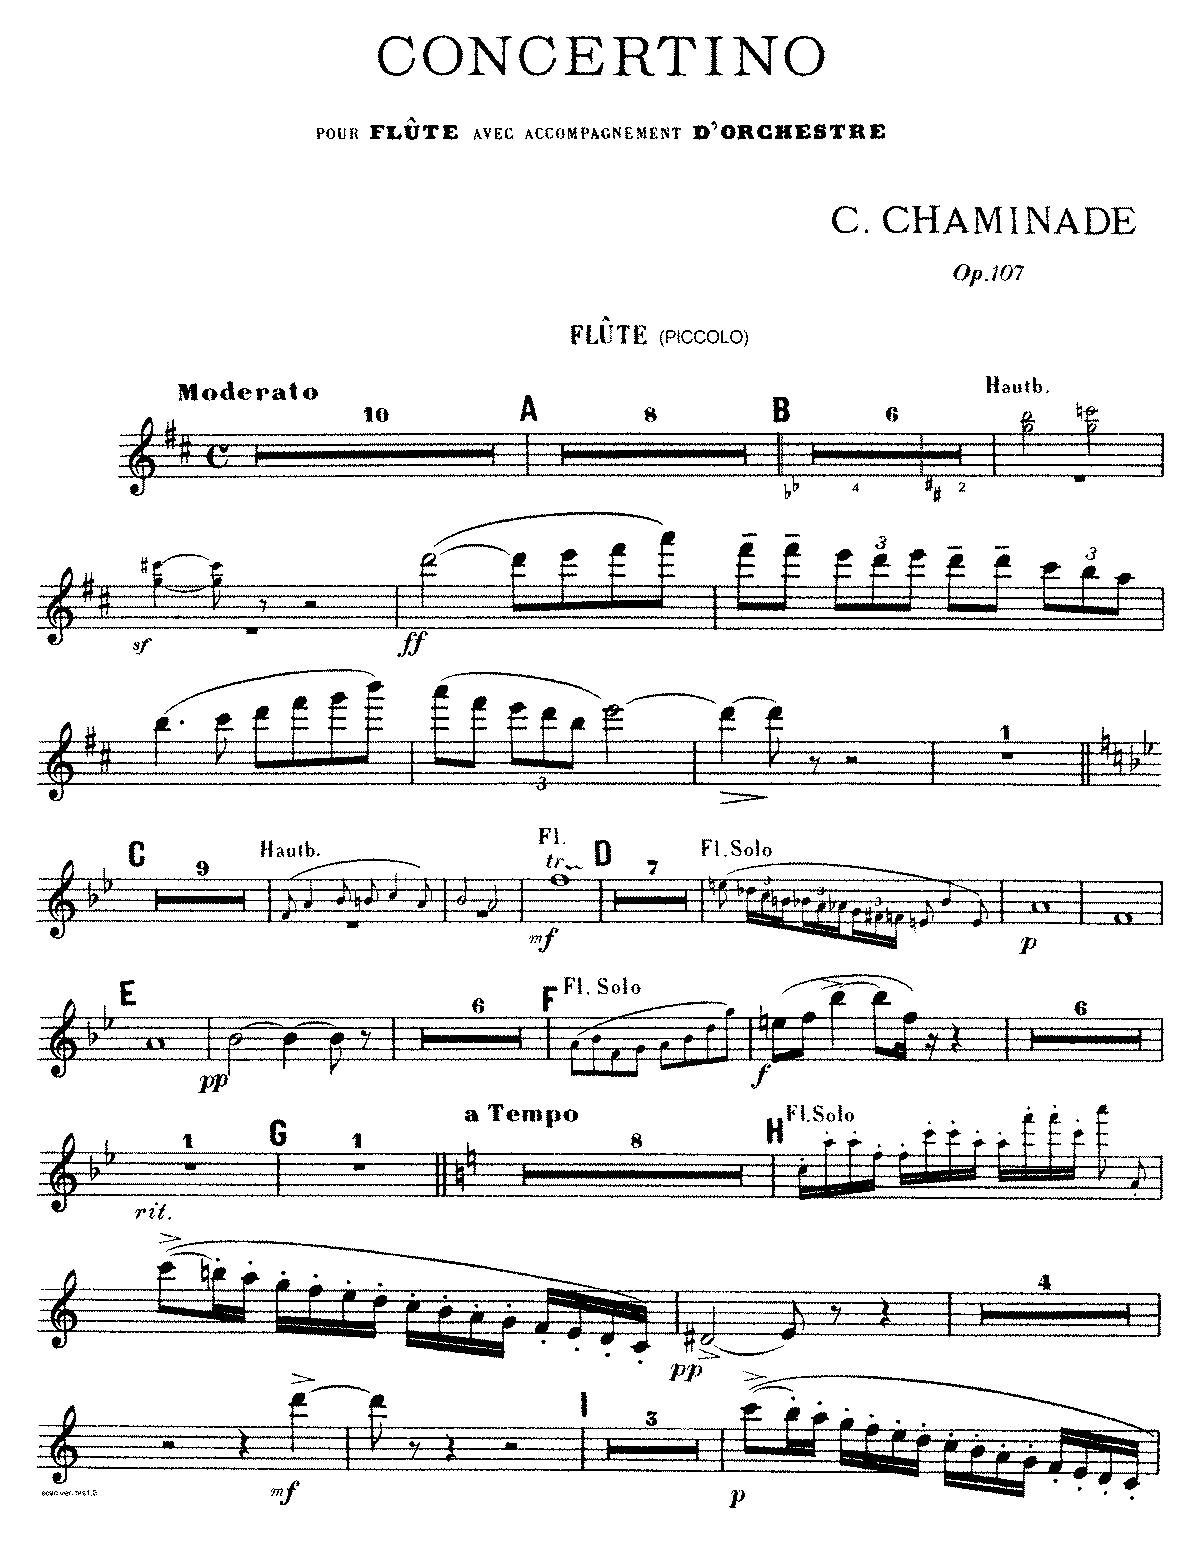 PMLP17533-Chaminade Concertino Op107 Winds.pdf